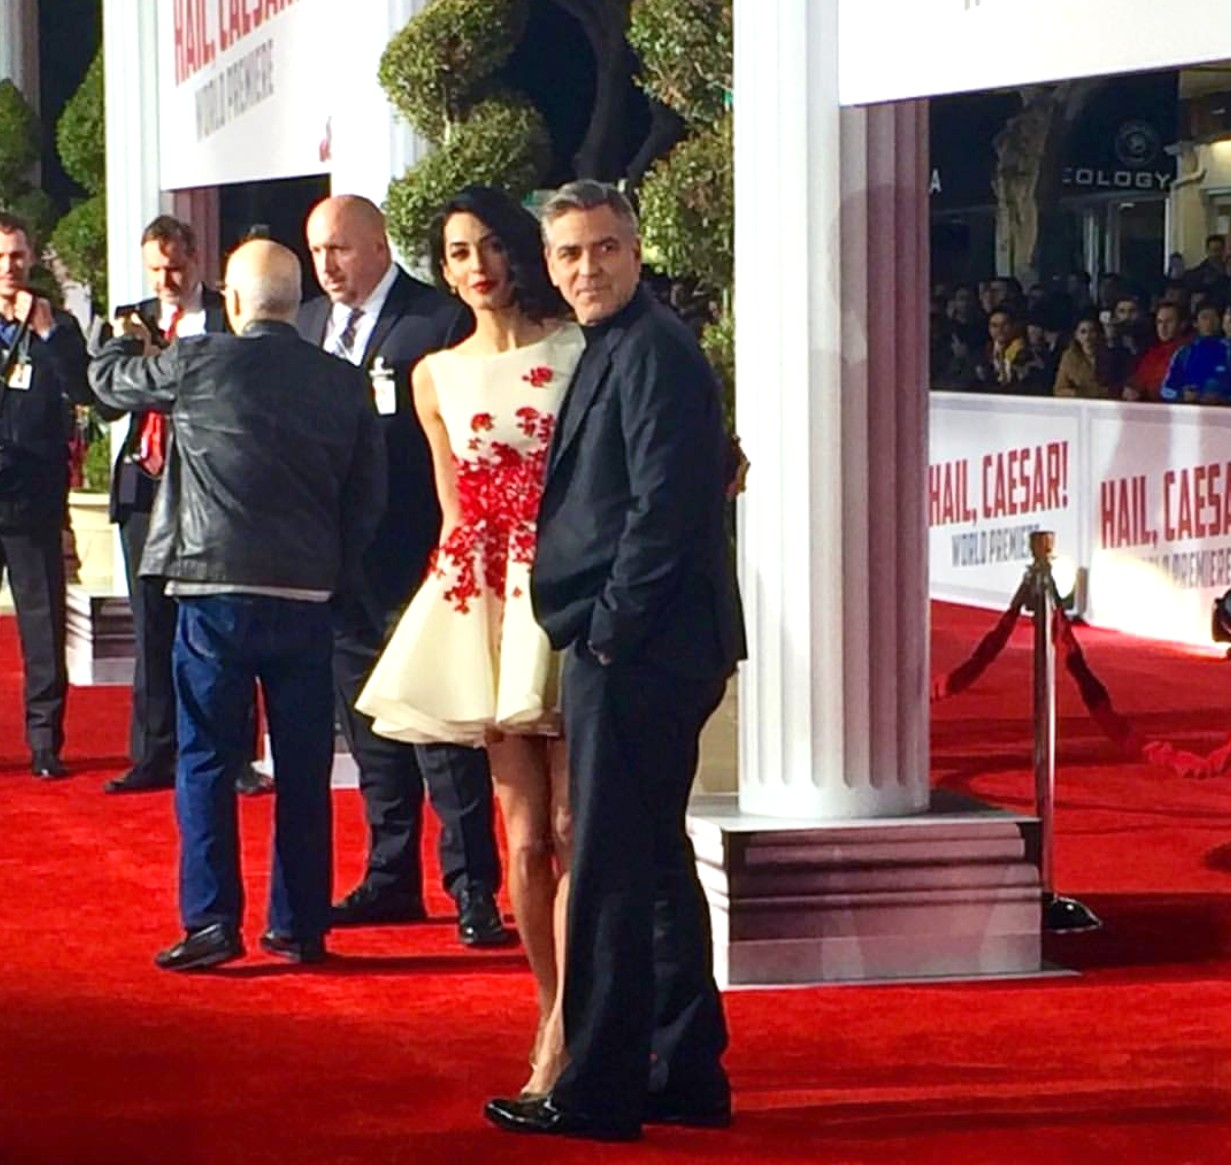 Hail Caesar, movie premiere, George Clooney, LA